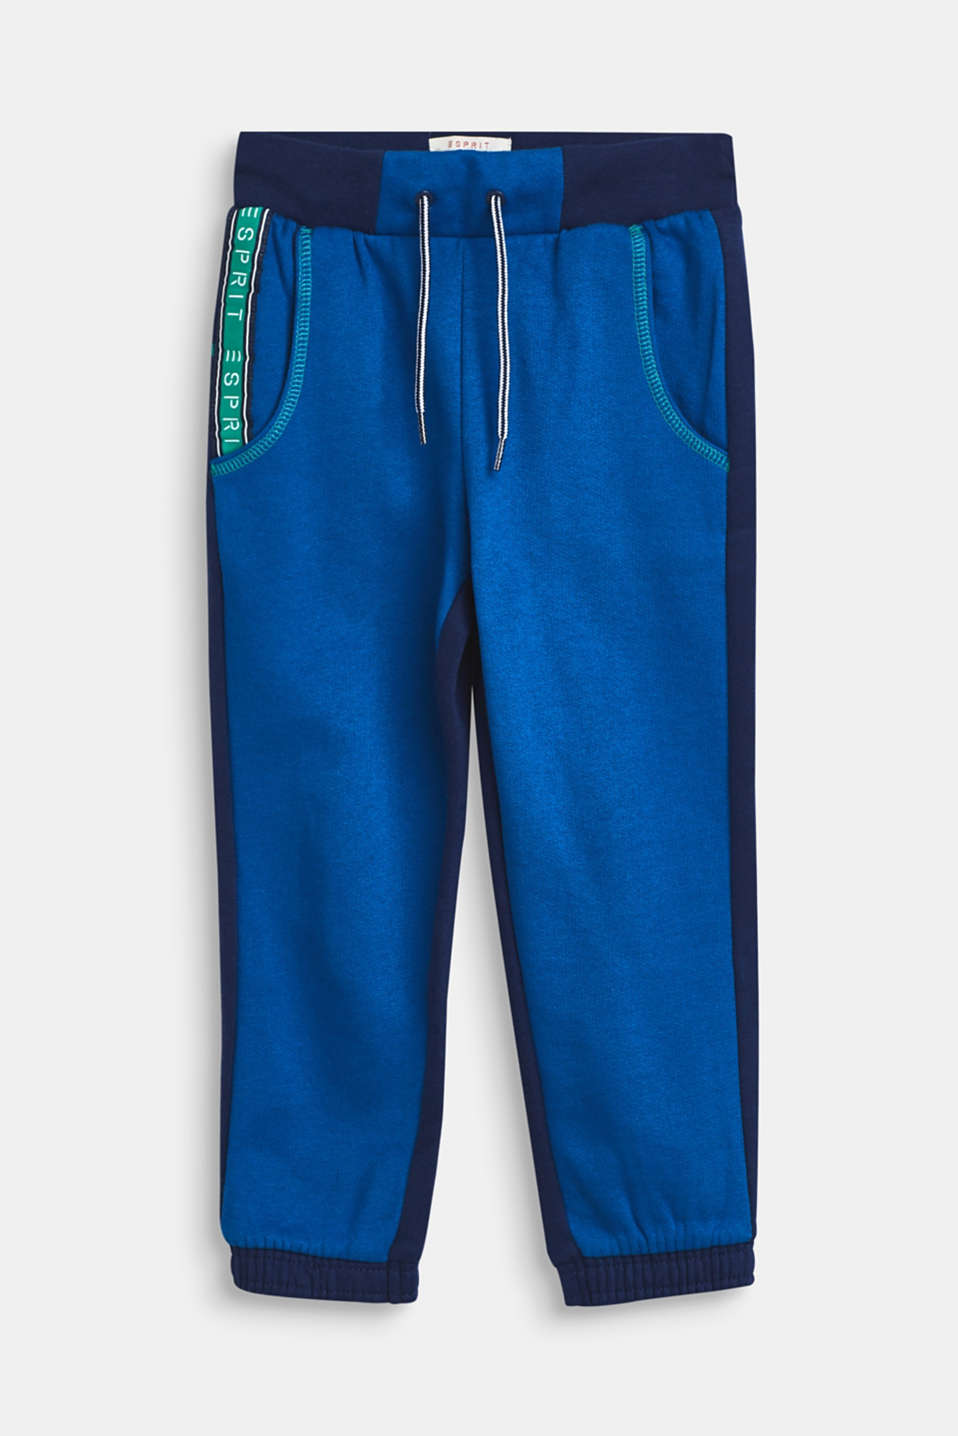 Esprit - Colour block tracksuit bottoms, 100% cotton